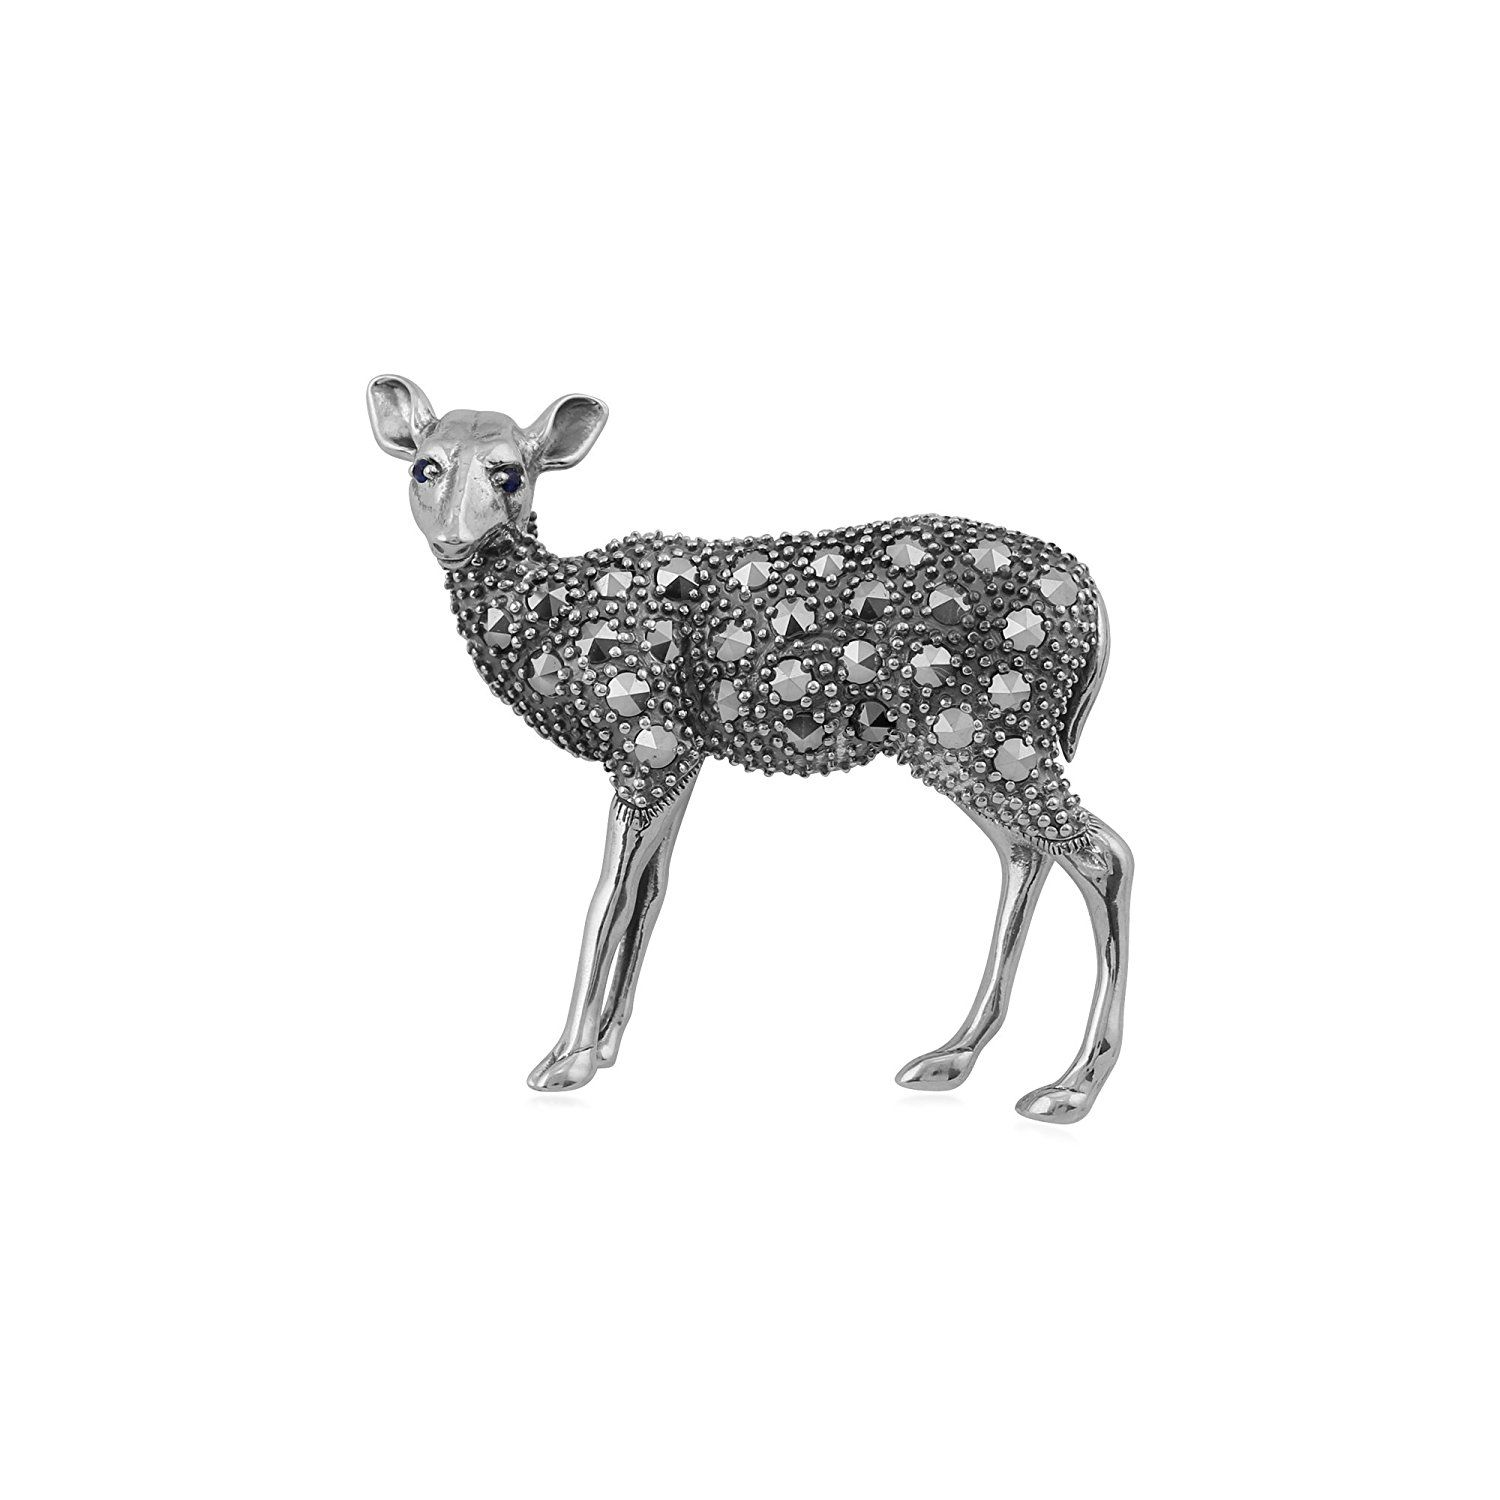 solid or for by htm bellamy george silver leaping designed geoffrey jewellery brooch brooches tarratt gazelles gazelle deer